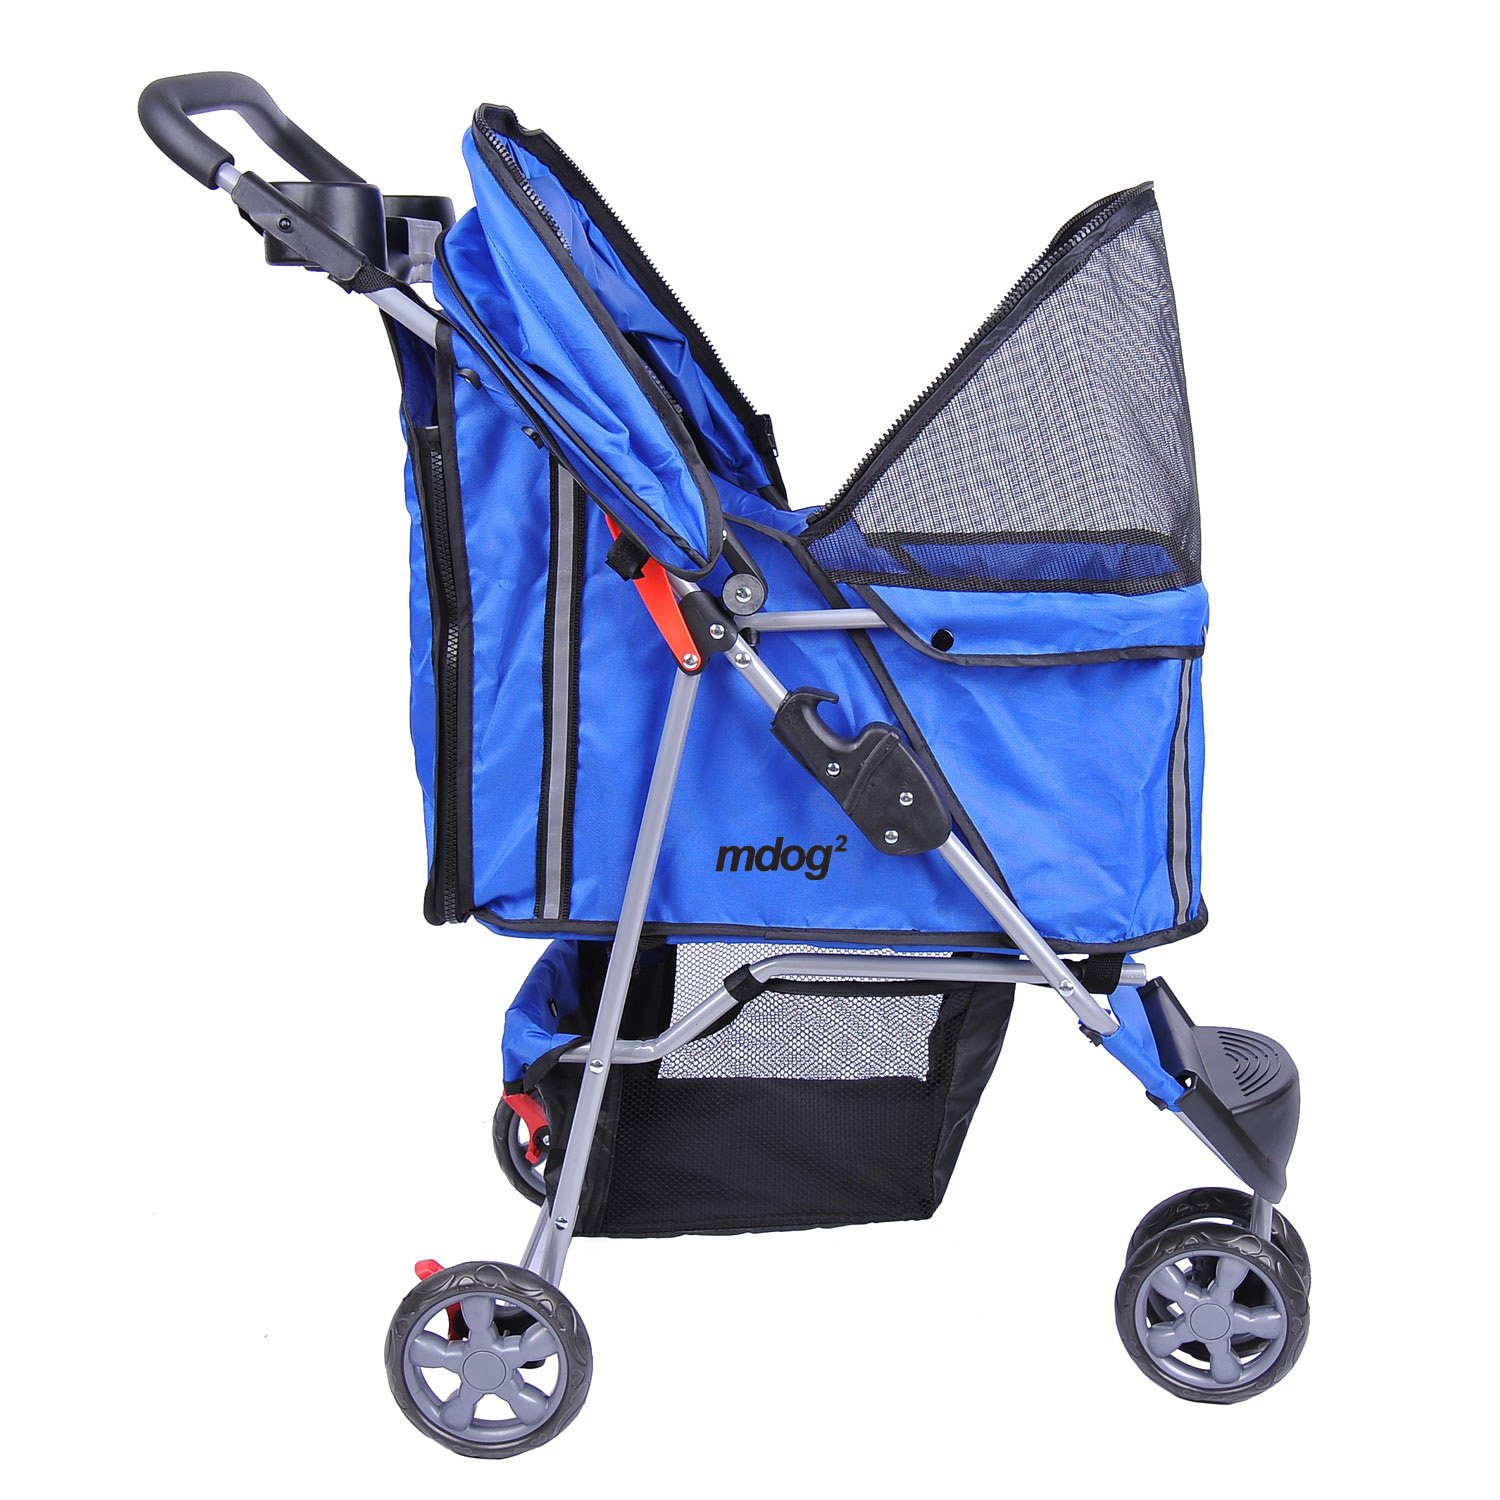 MDOG2 MK0015A 3-Wheel Front and Rear Entry Pet Stroller, Blue by MDOG2 (Image #2)